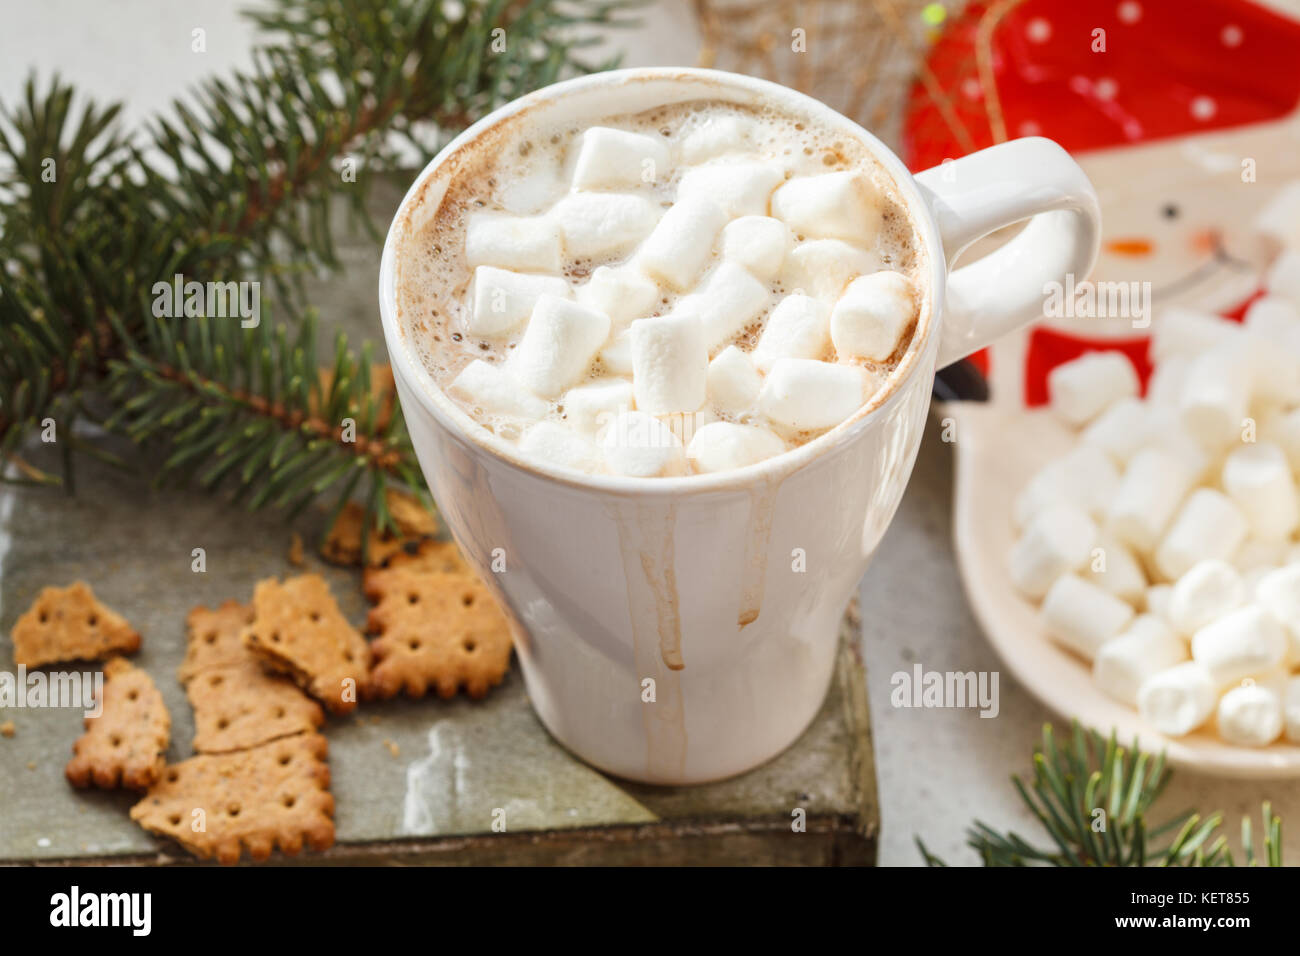 Hot Christmas cocoa in a white mug with marshmallow and spices. Holiday hot drink concept. Stock Photo